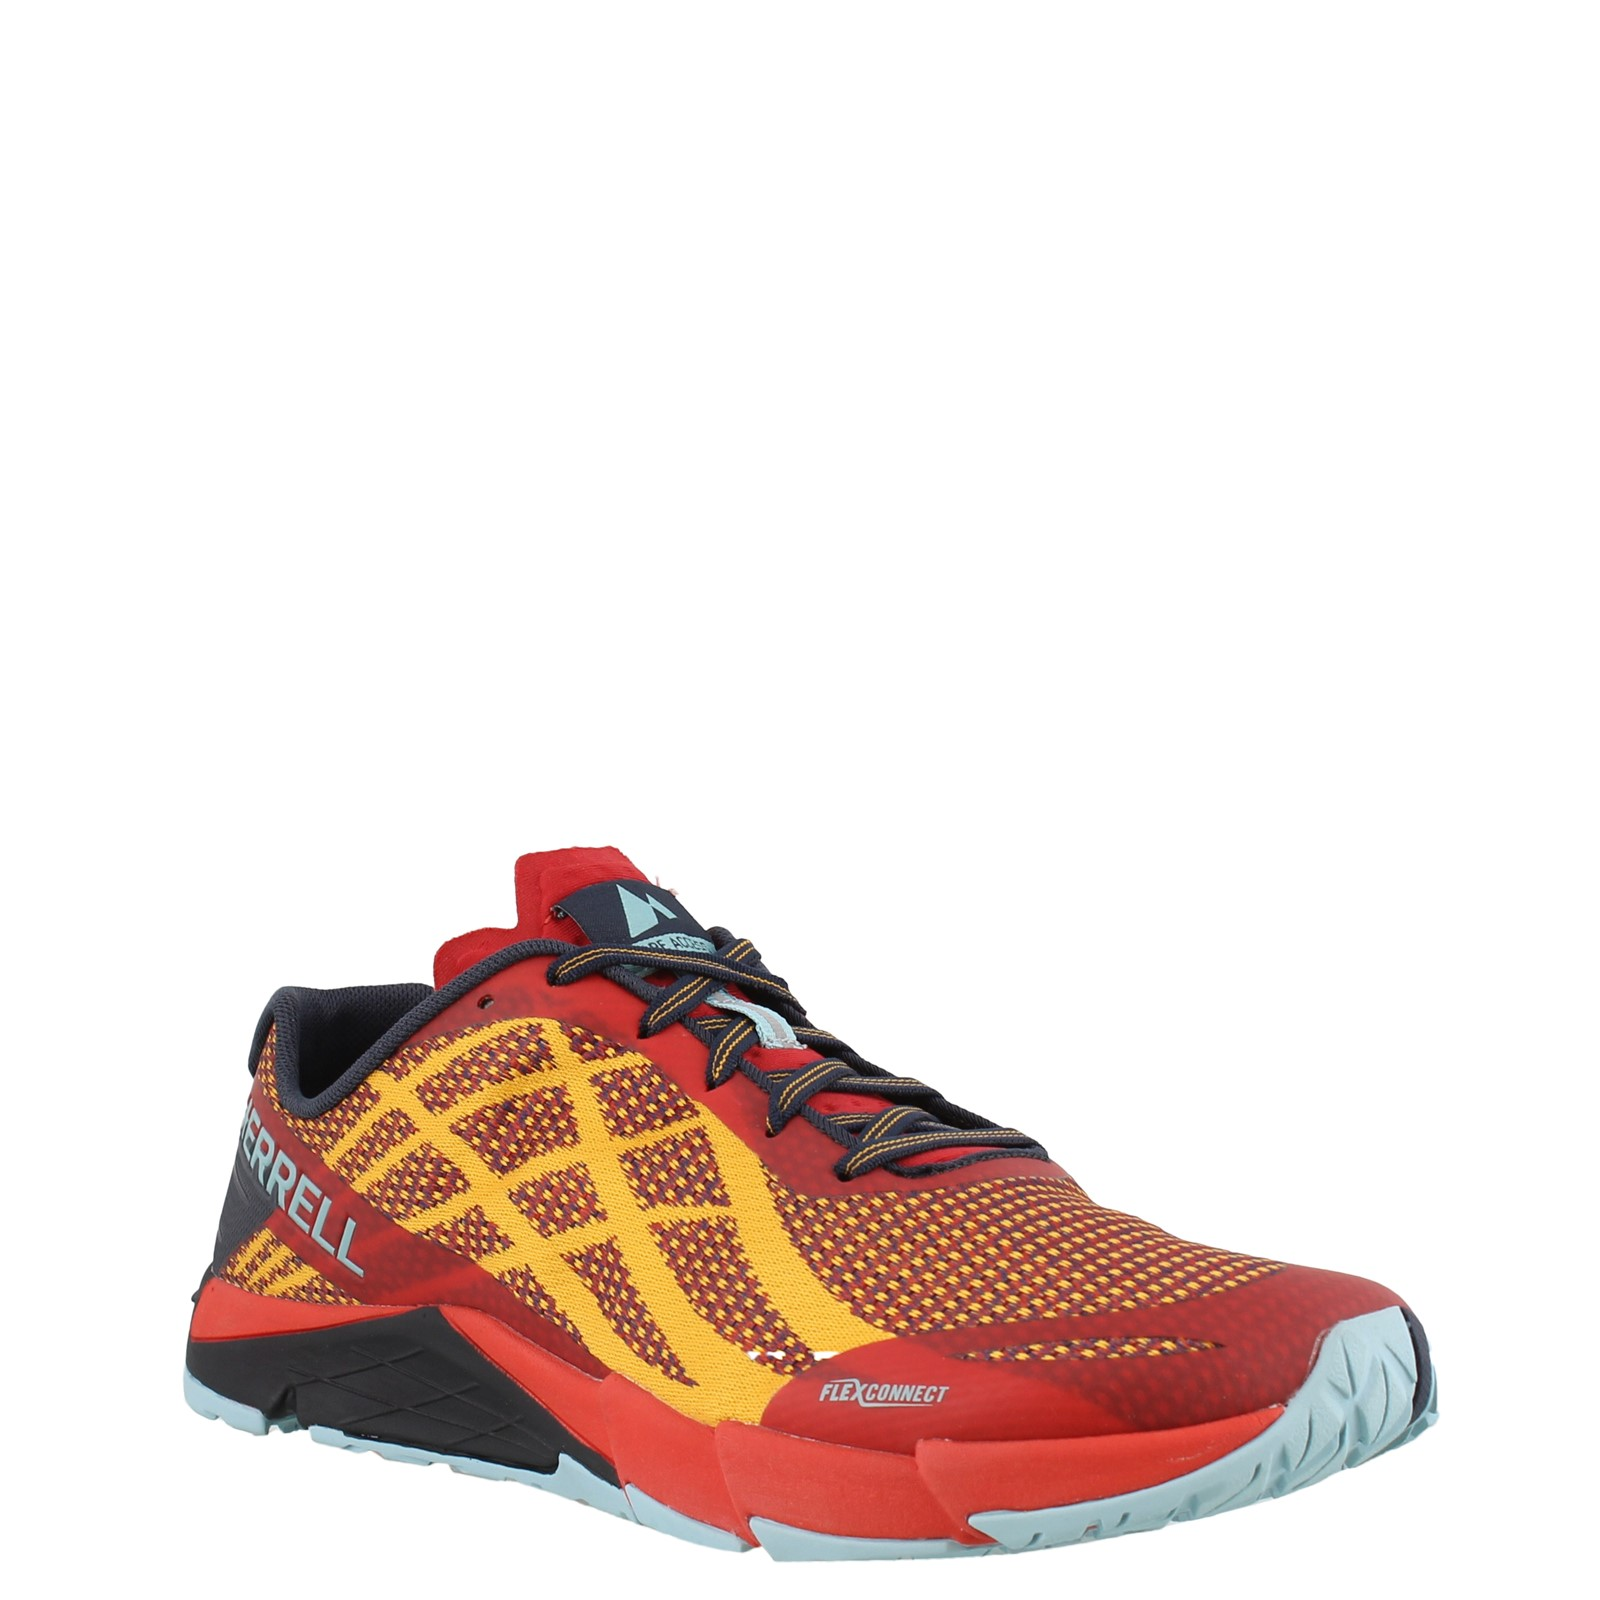 Merrell Mens Bare Access Flex Trail Running Shoes Trainers Sneakers Red Yellow